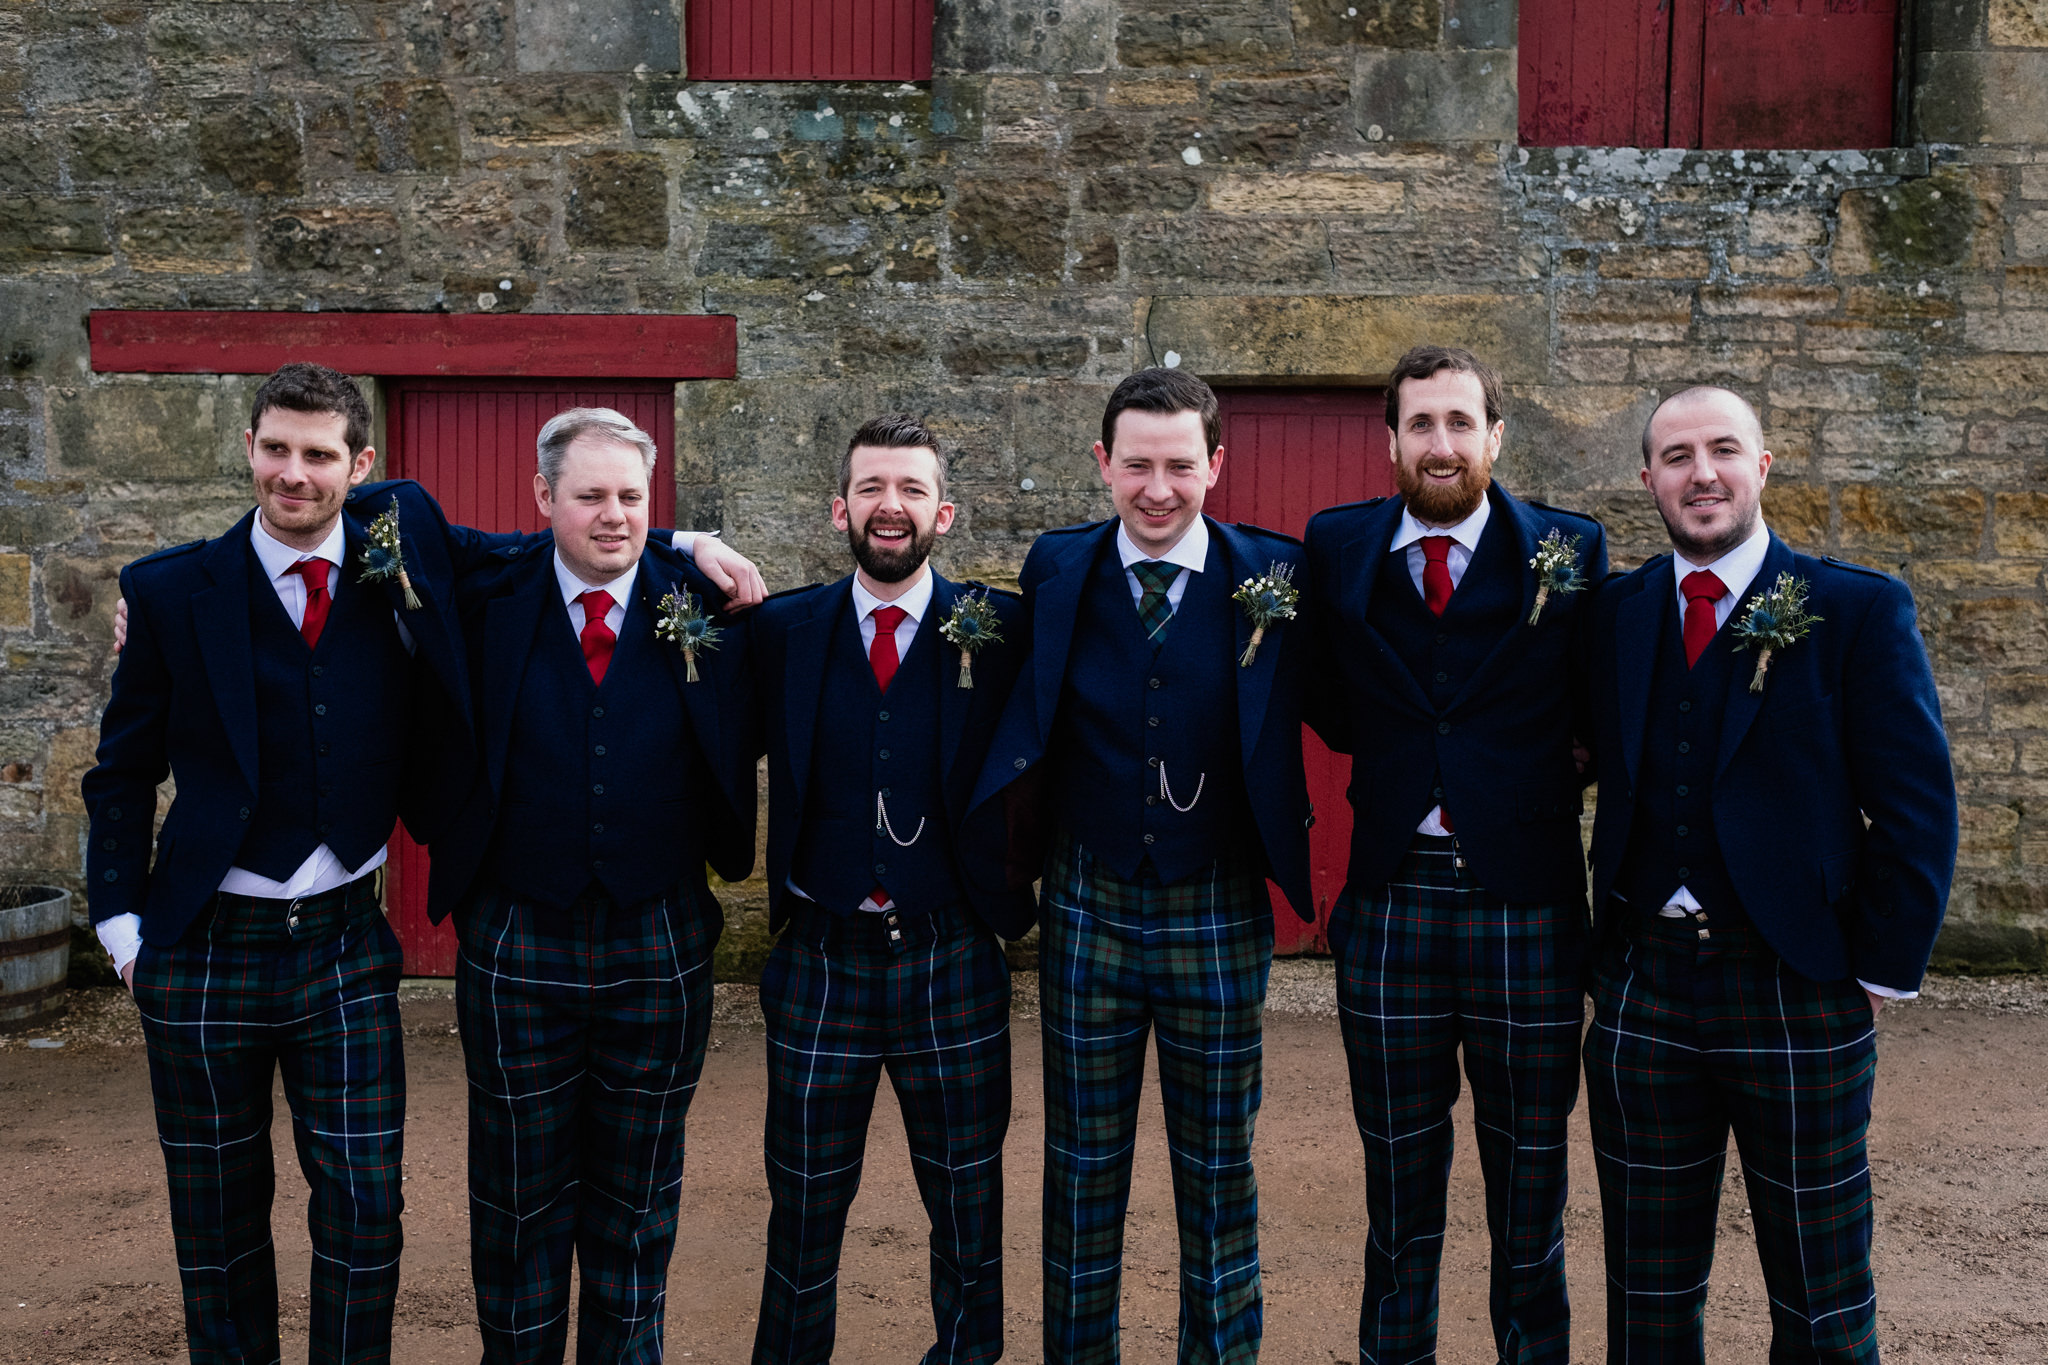 Fun Family Barn Wedding - Kinkell Byre_017.jpg